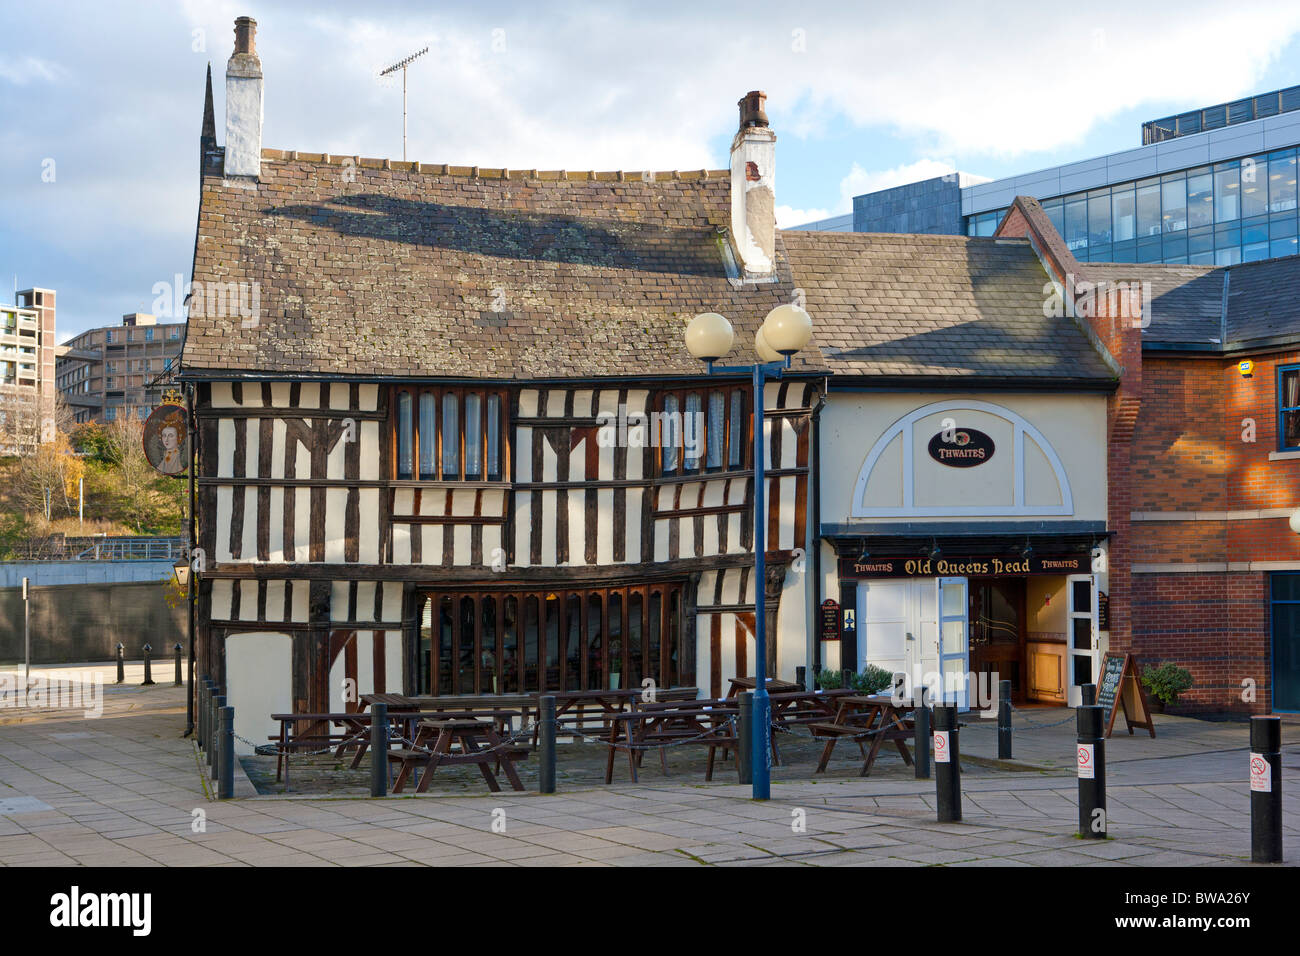 Old Queen's Head, Sheffield Photo Stock